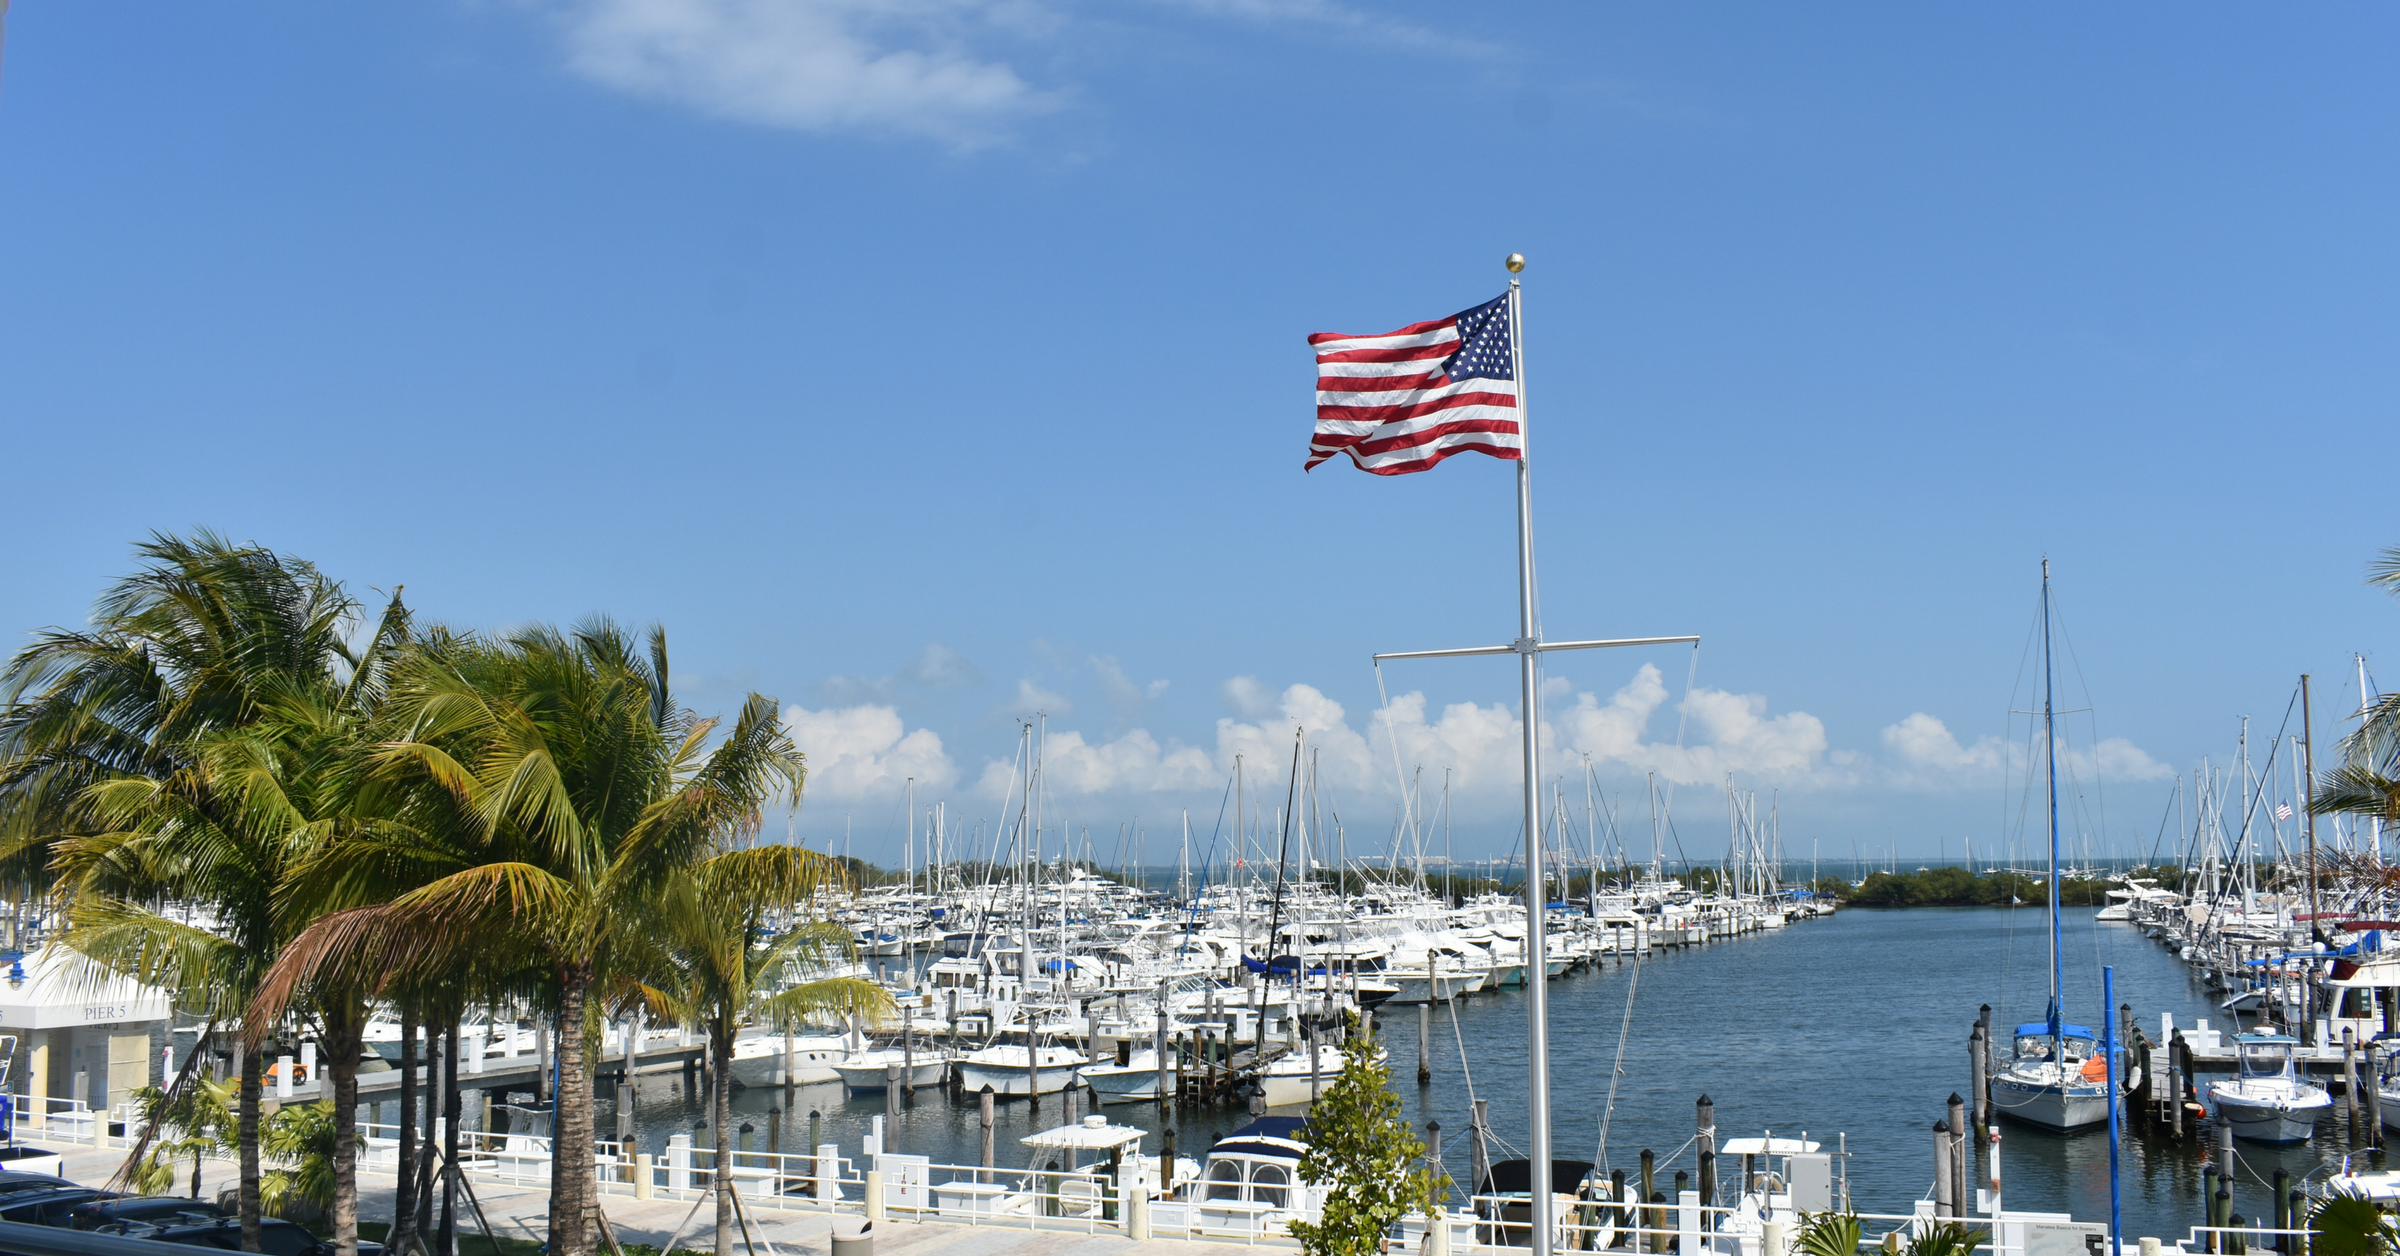 Miami Slips and Moorings: 5 Top Marina Picks for Florida Boaters